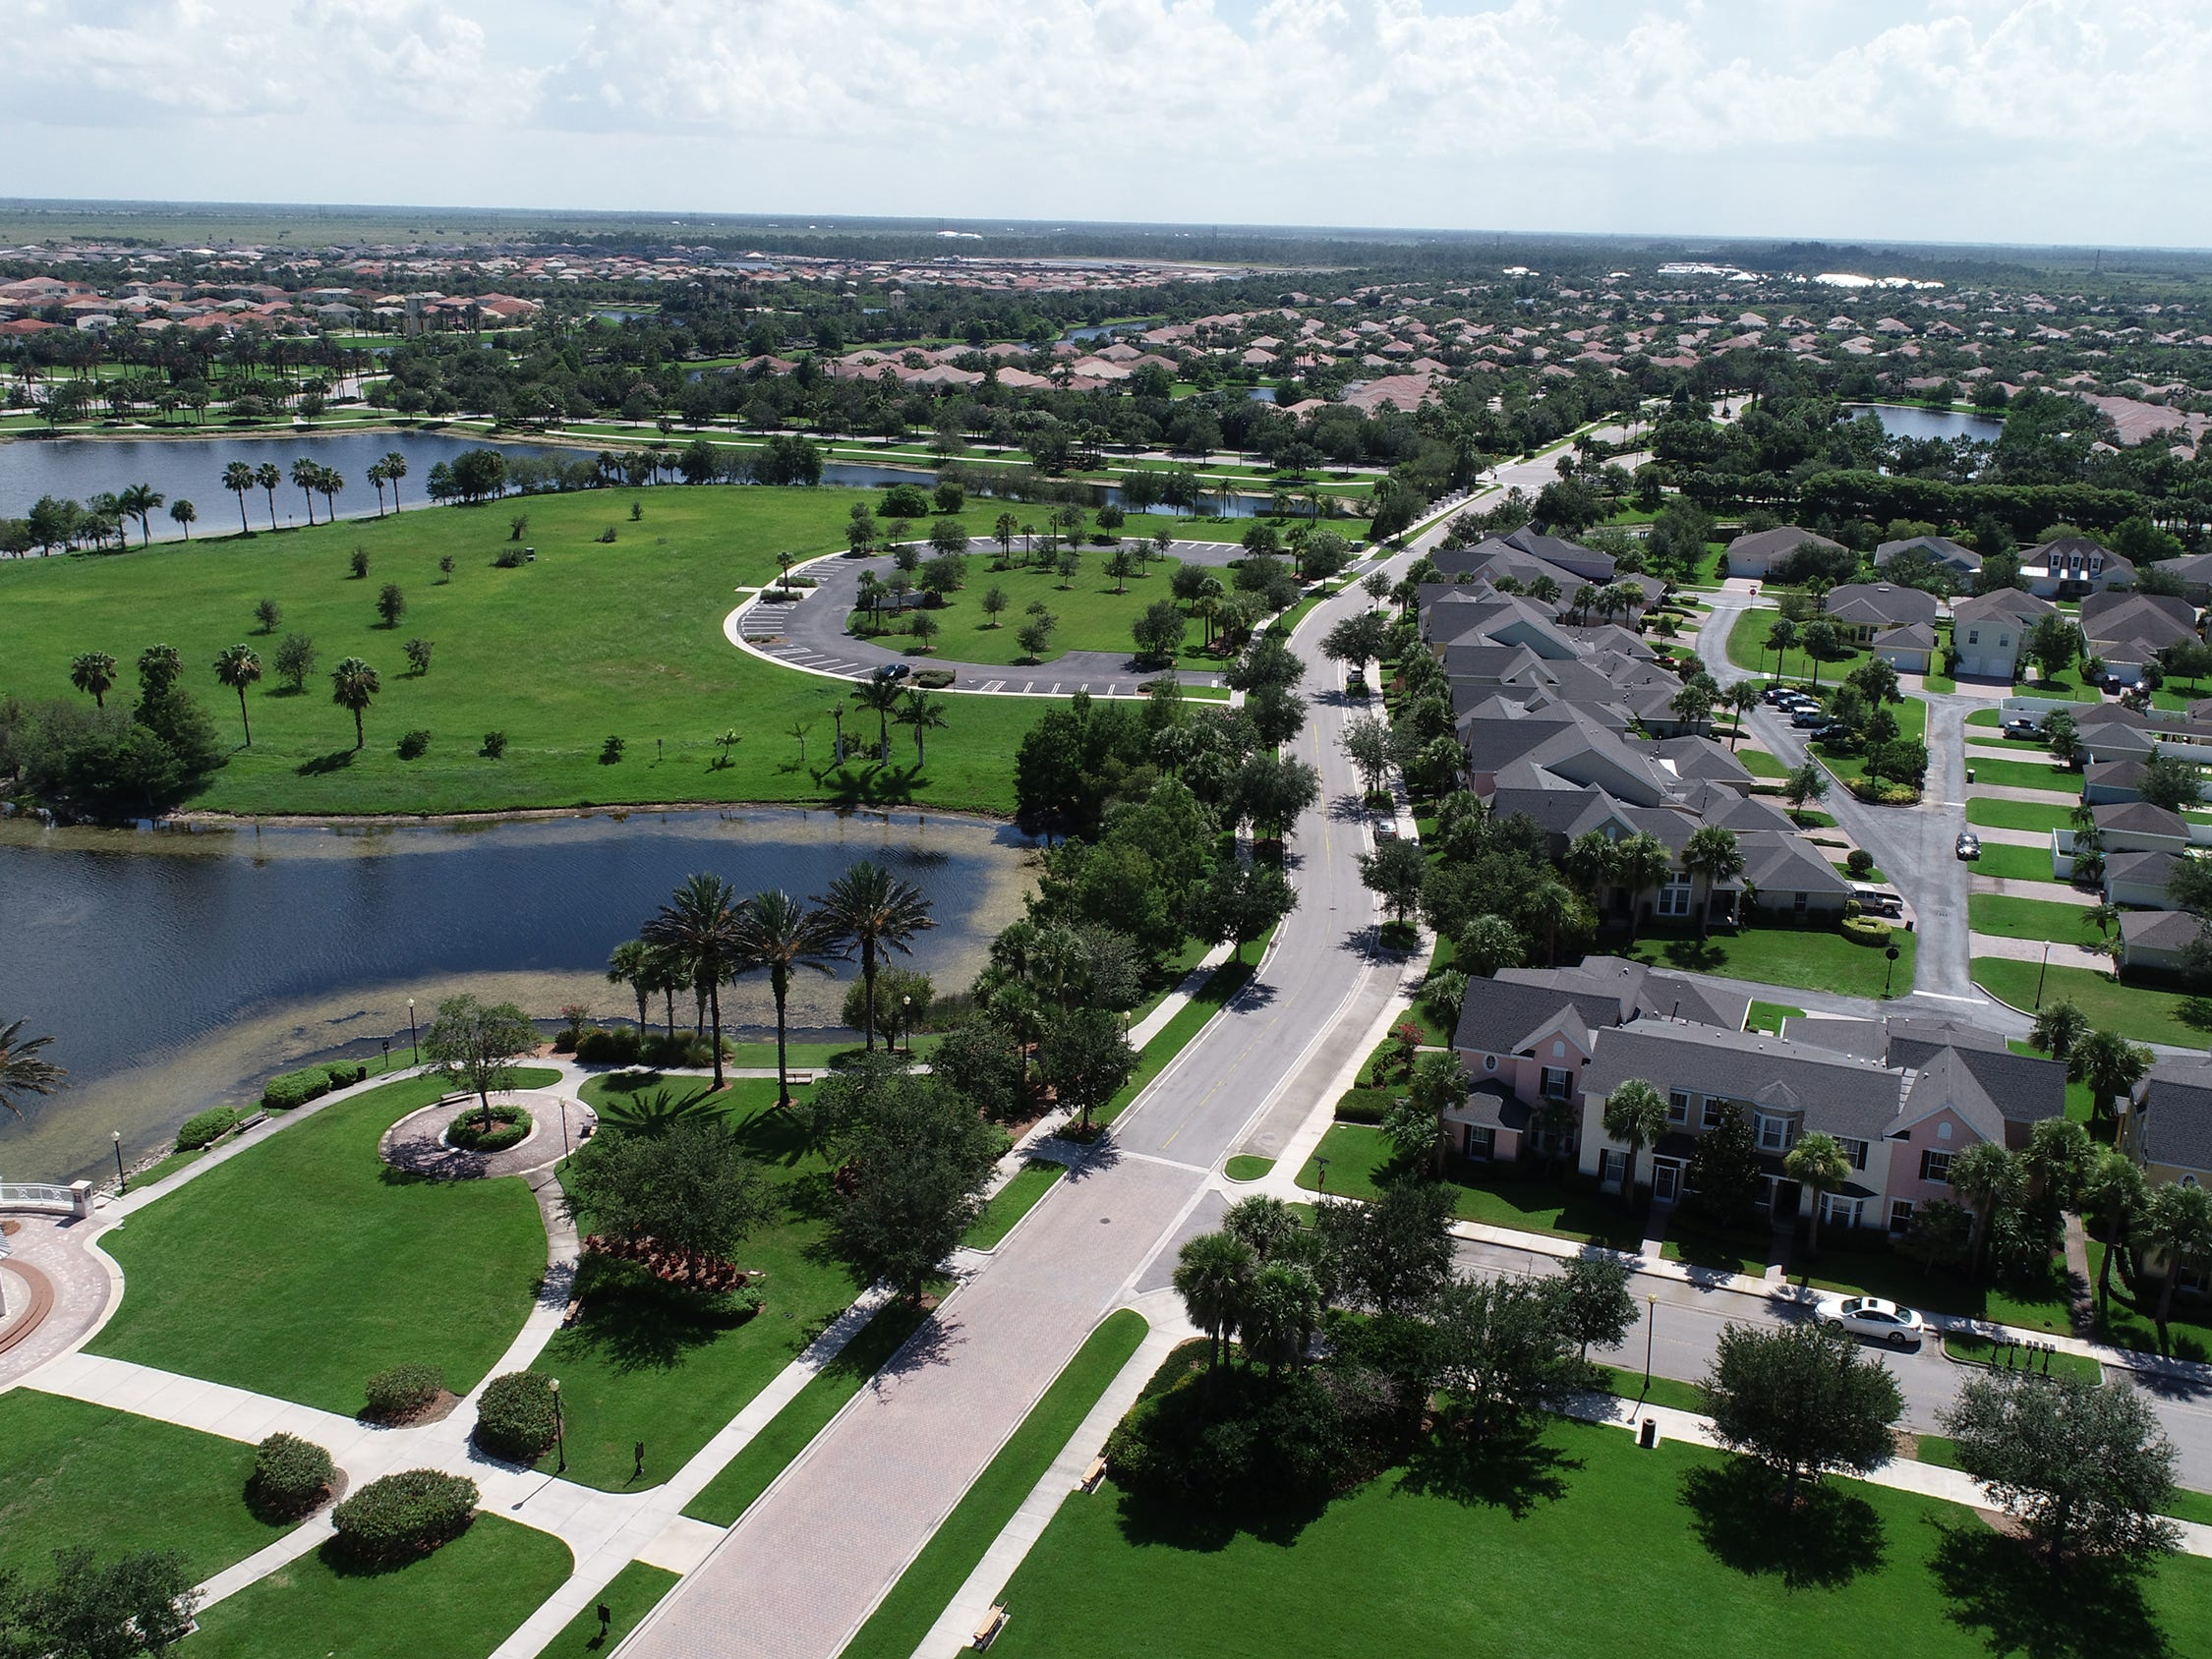 Port St. Lucie City Council gives final OK to The Preserve, despite opposition from neighbors